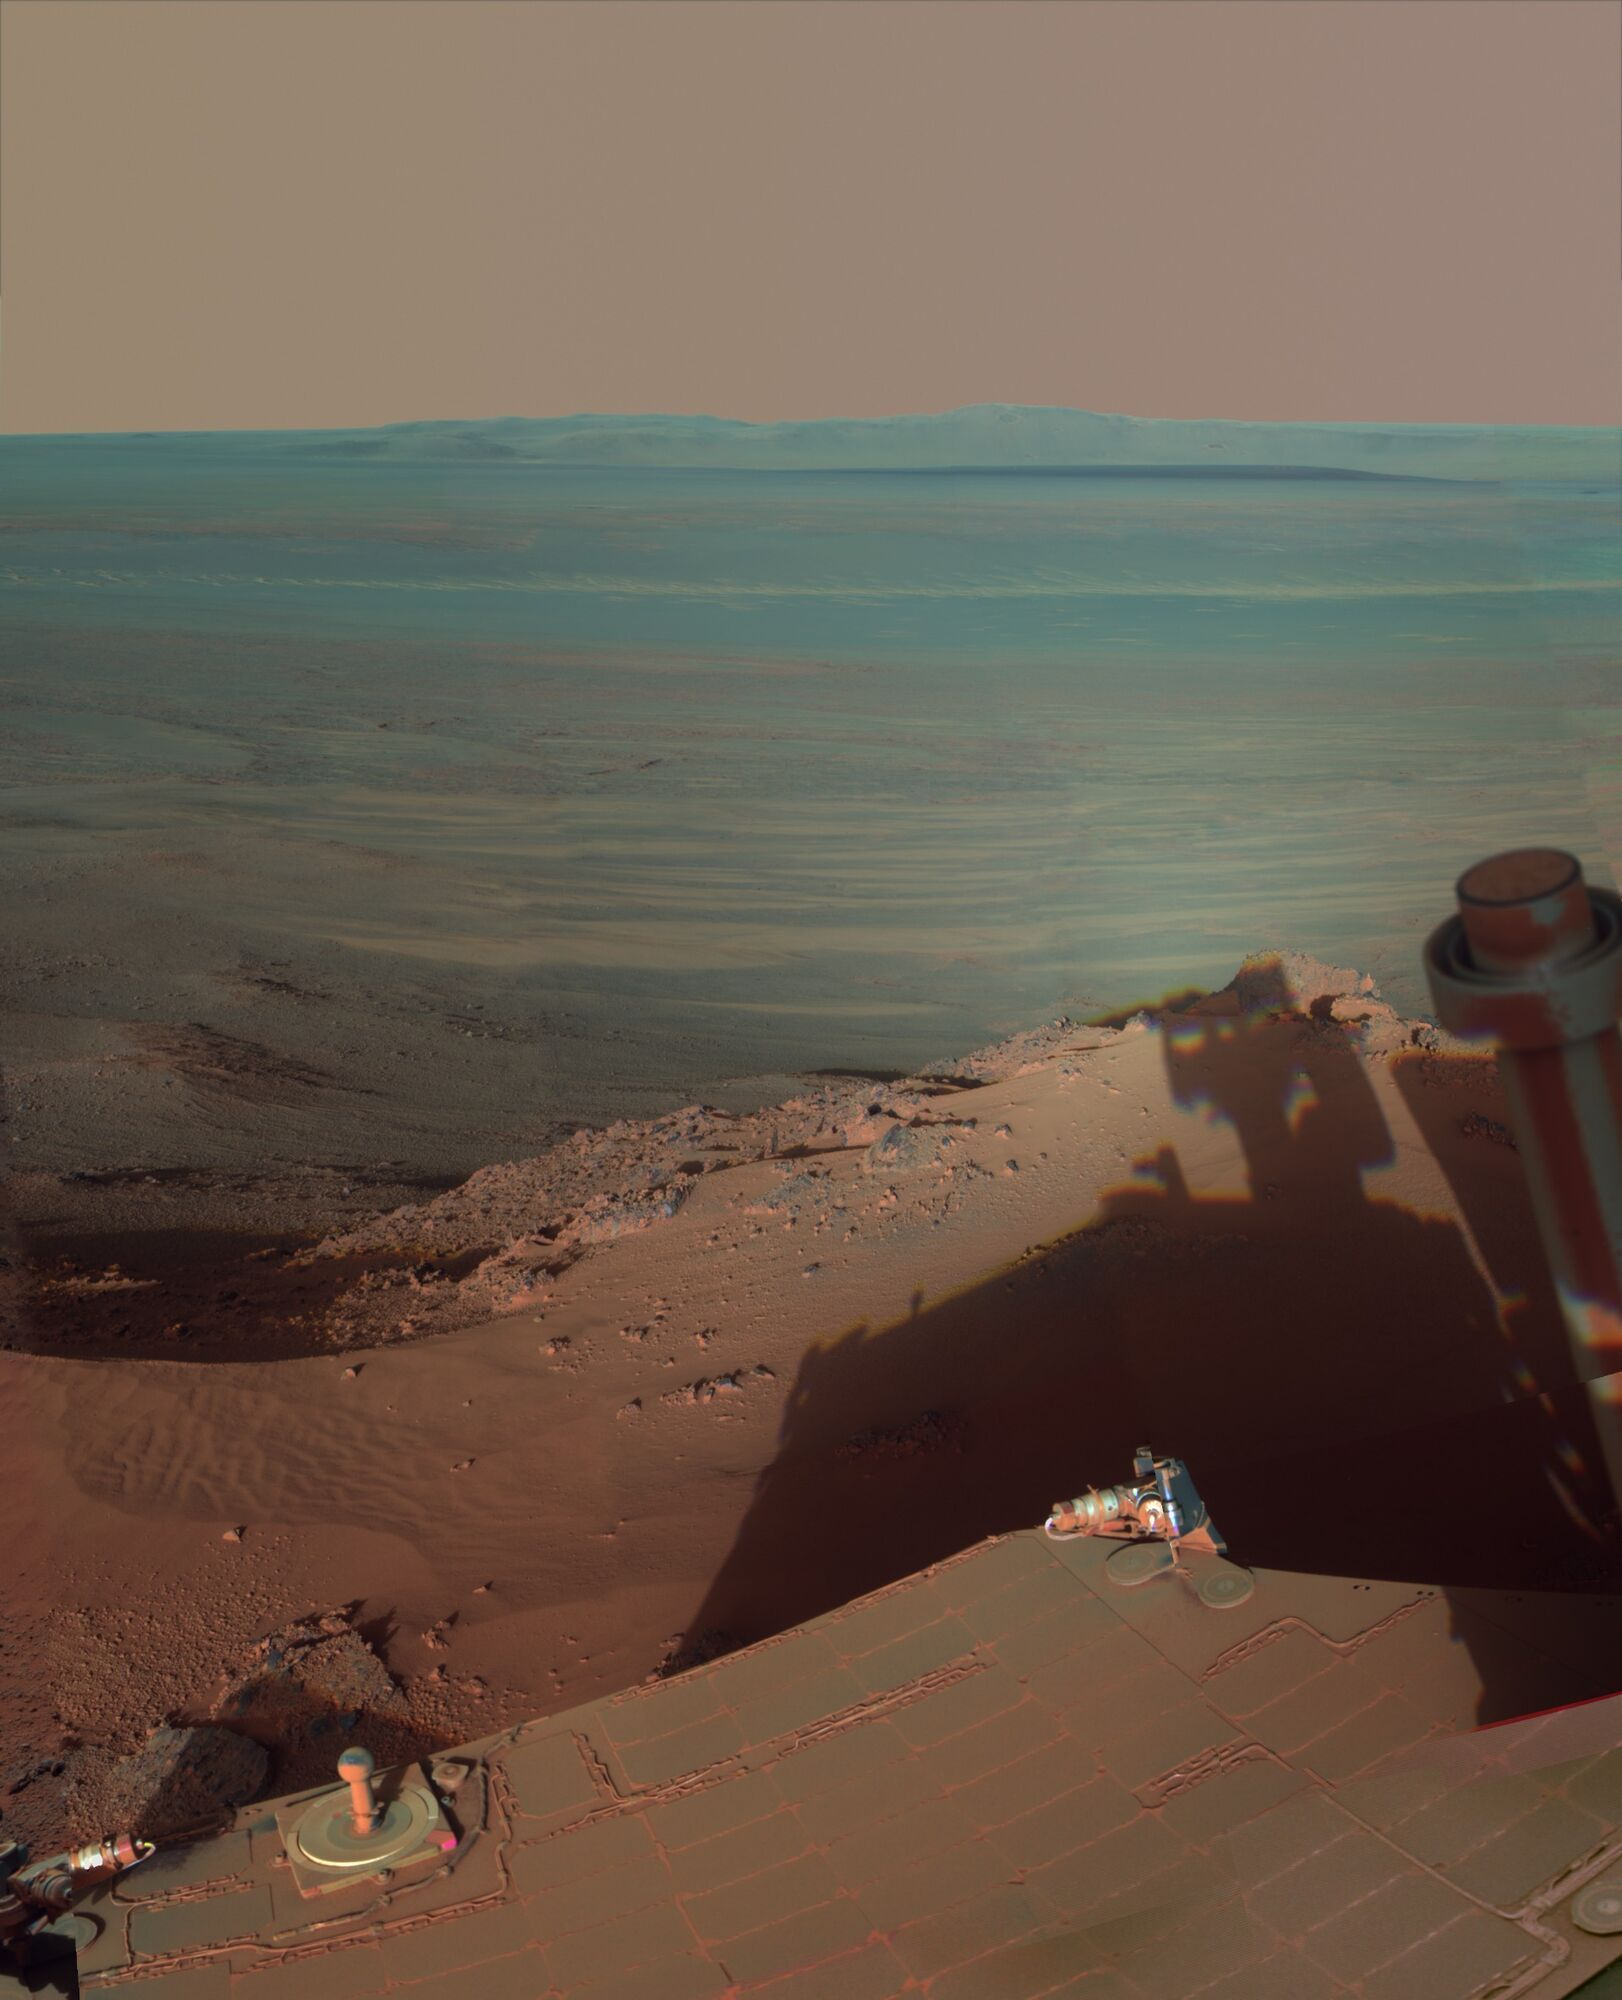 Shadow of Opportunity on Endeavour Crater